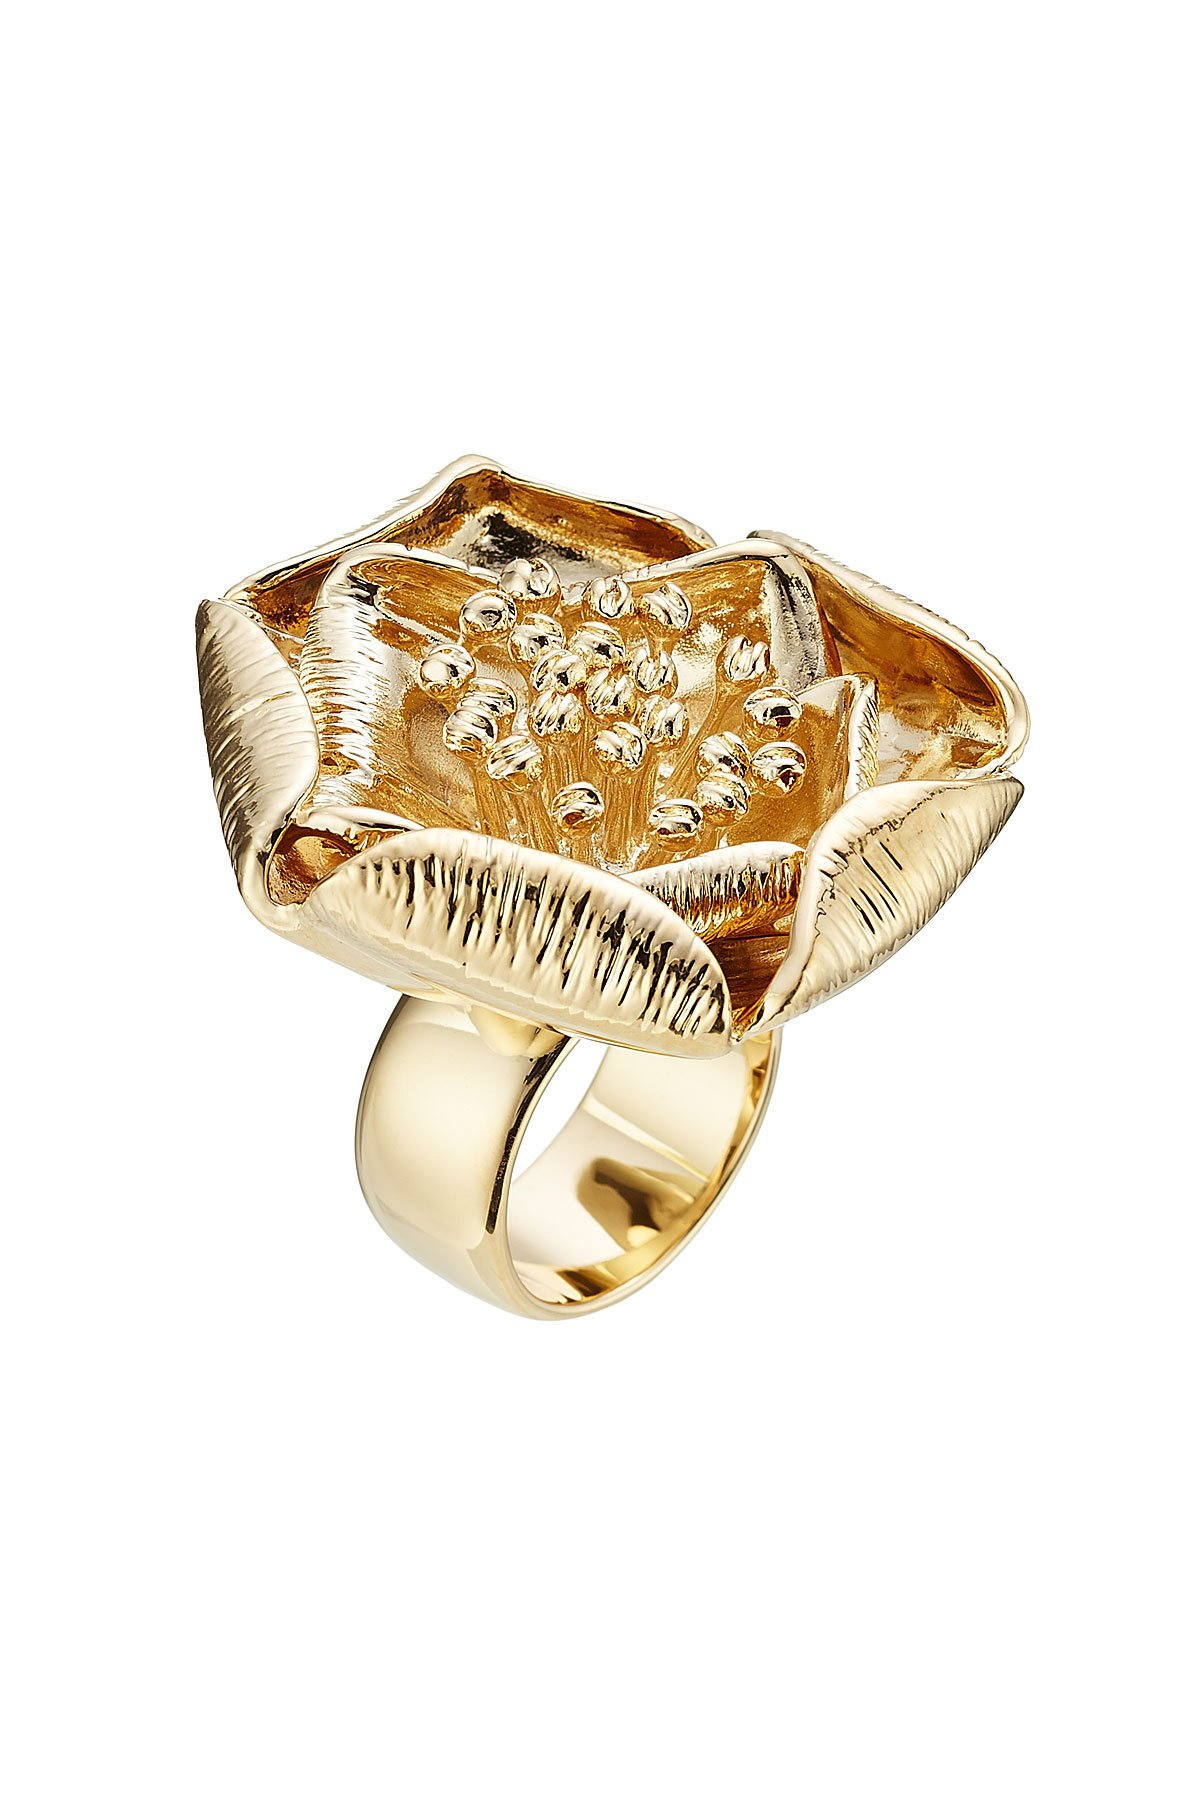 18kt Yellow Gold-Plated Flower Ring Gr. One Size